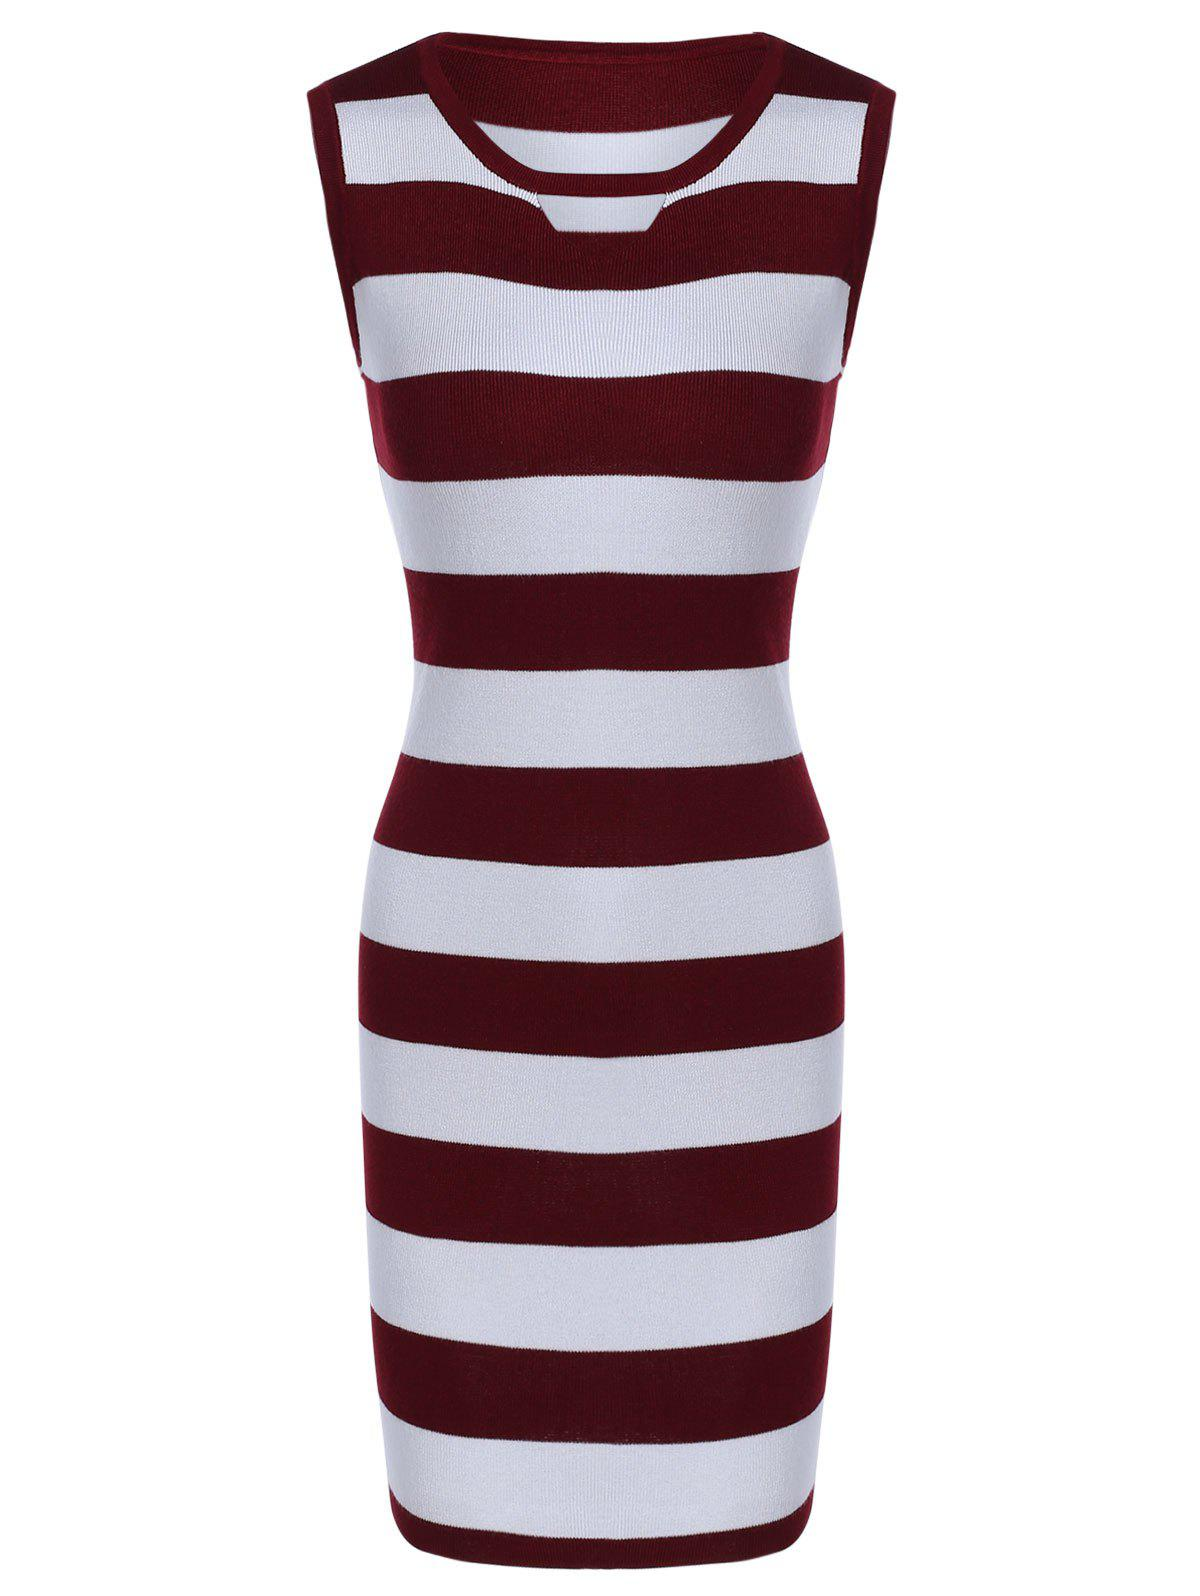 Sleeveless Hollow Out Striped Knitted Dress - WINE RED ONE SIZE